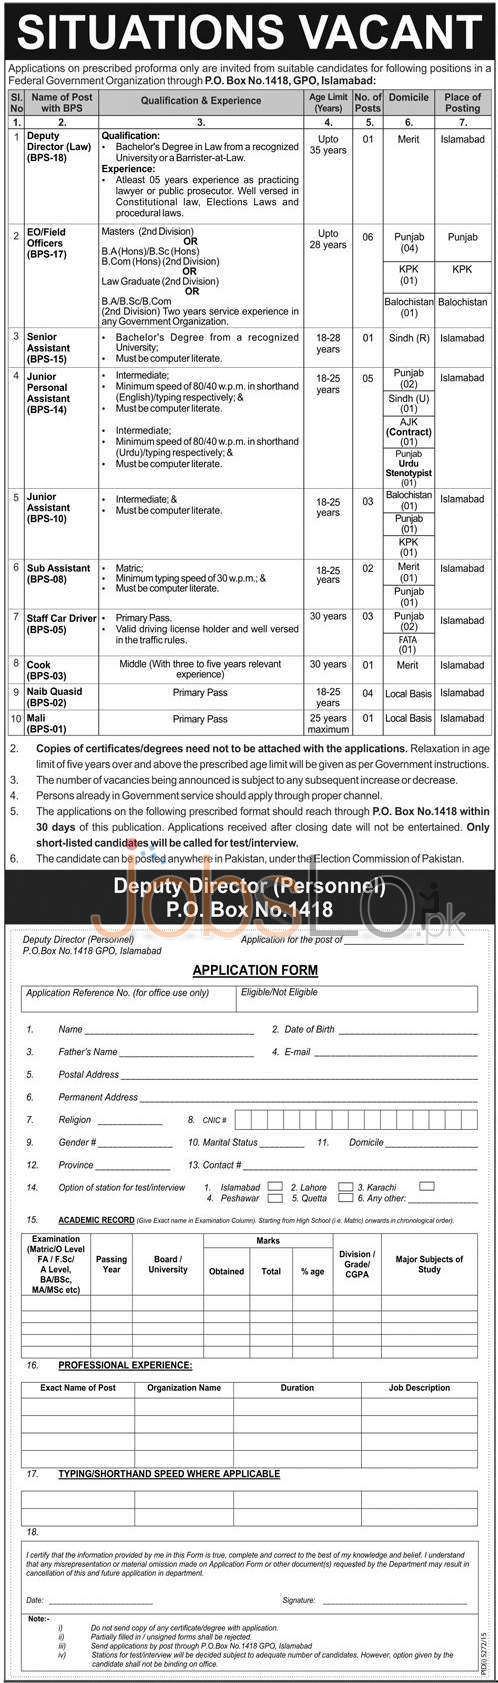 Federal Govt Organization Islamabad Jobs April 2016 For Jr. Assistant Latest Add